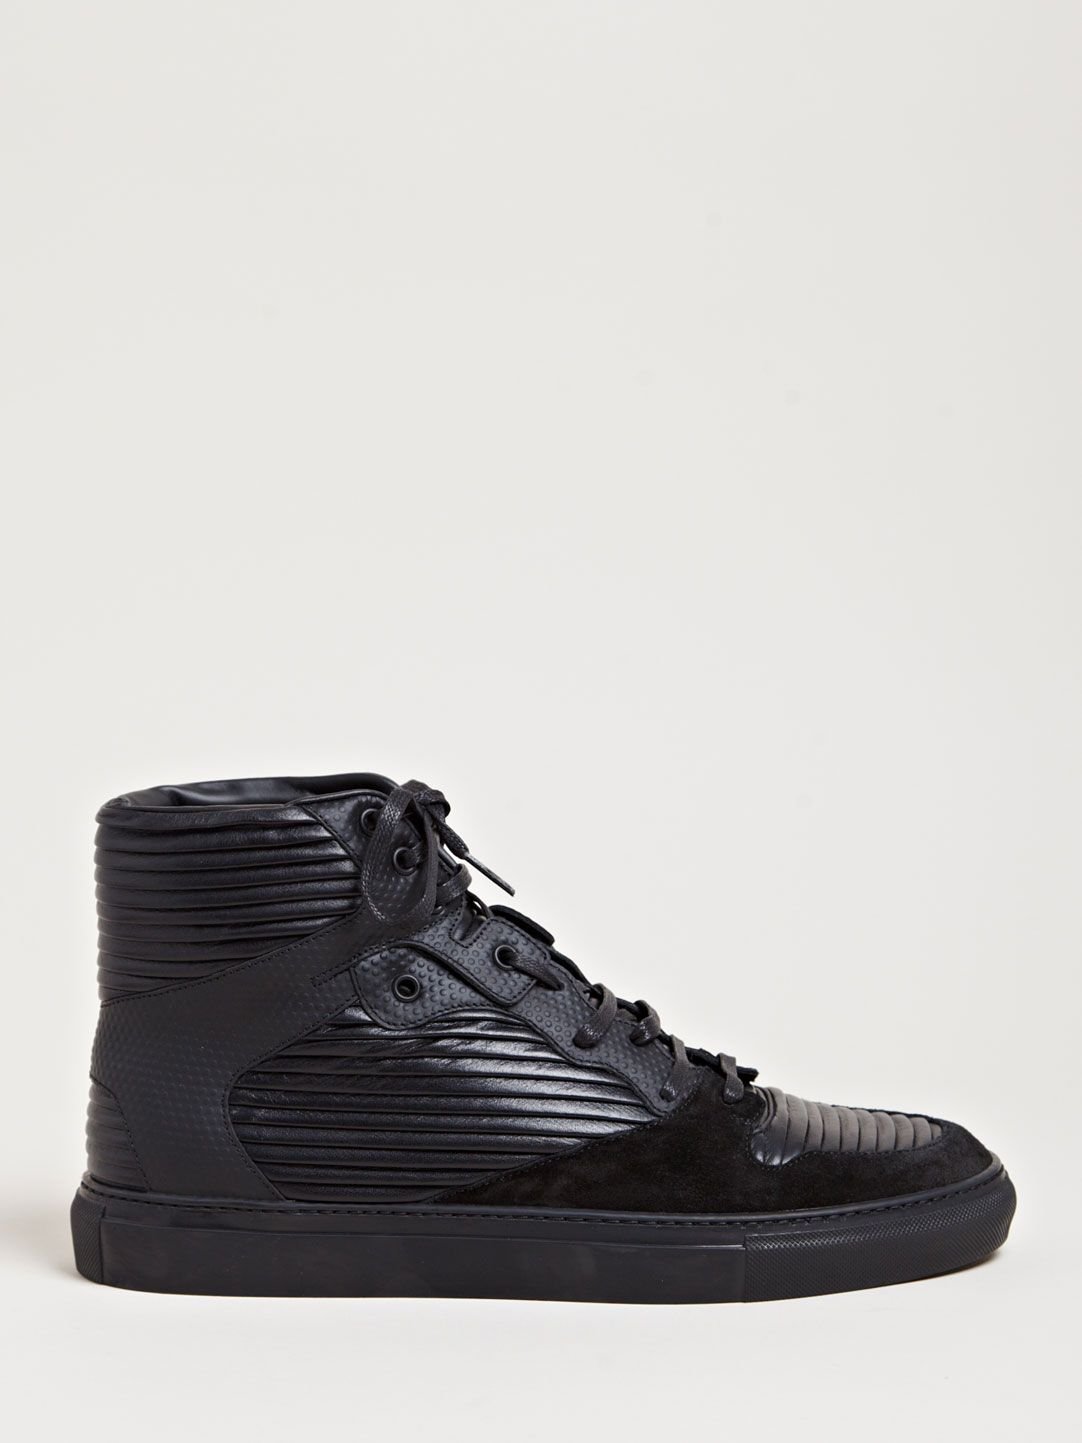 STAR TYSON HIGH TOP SNEAKERSSHOES [UK